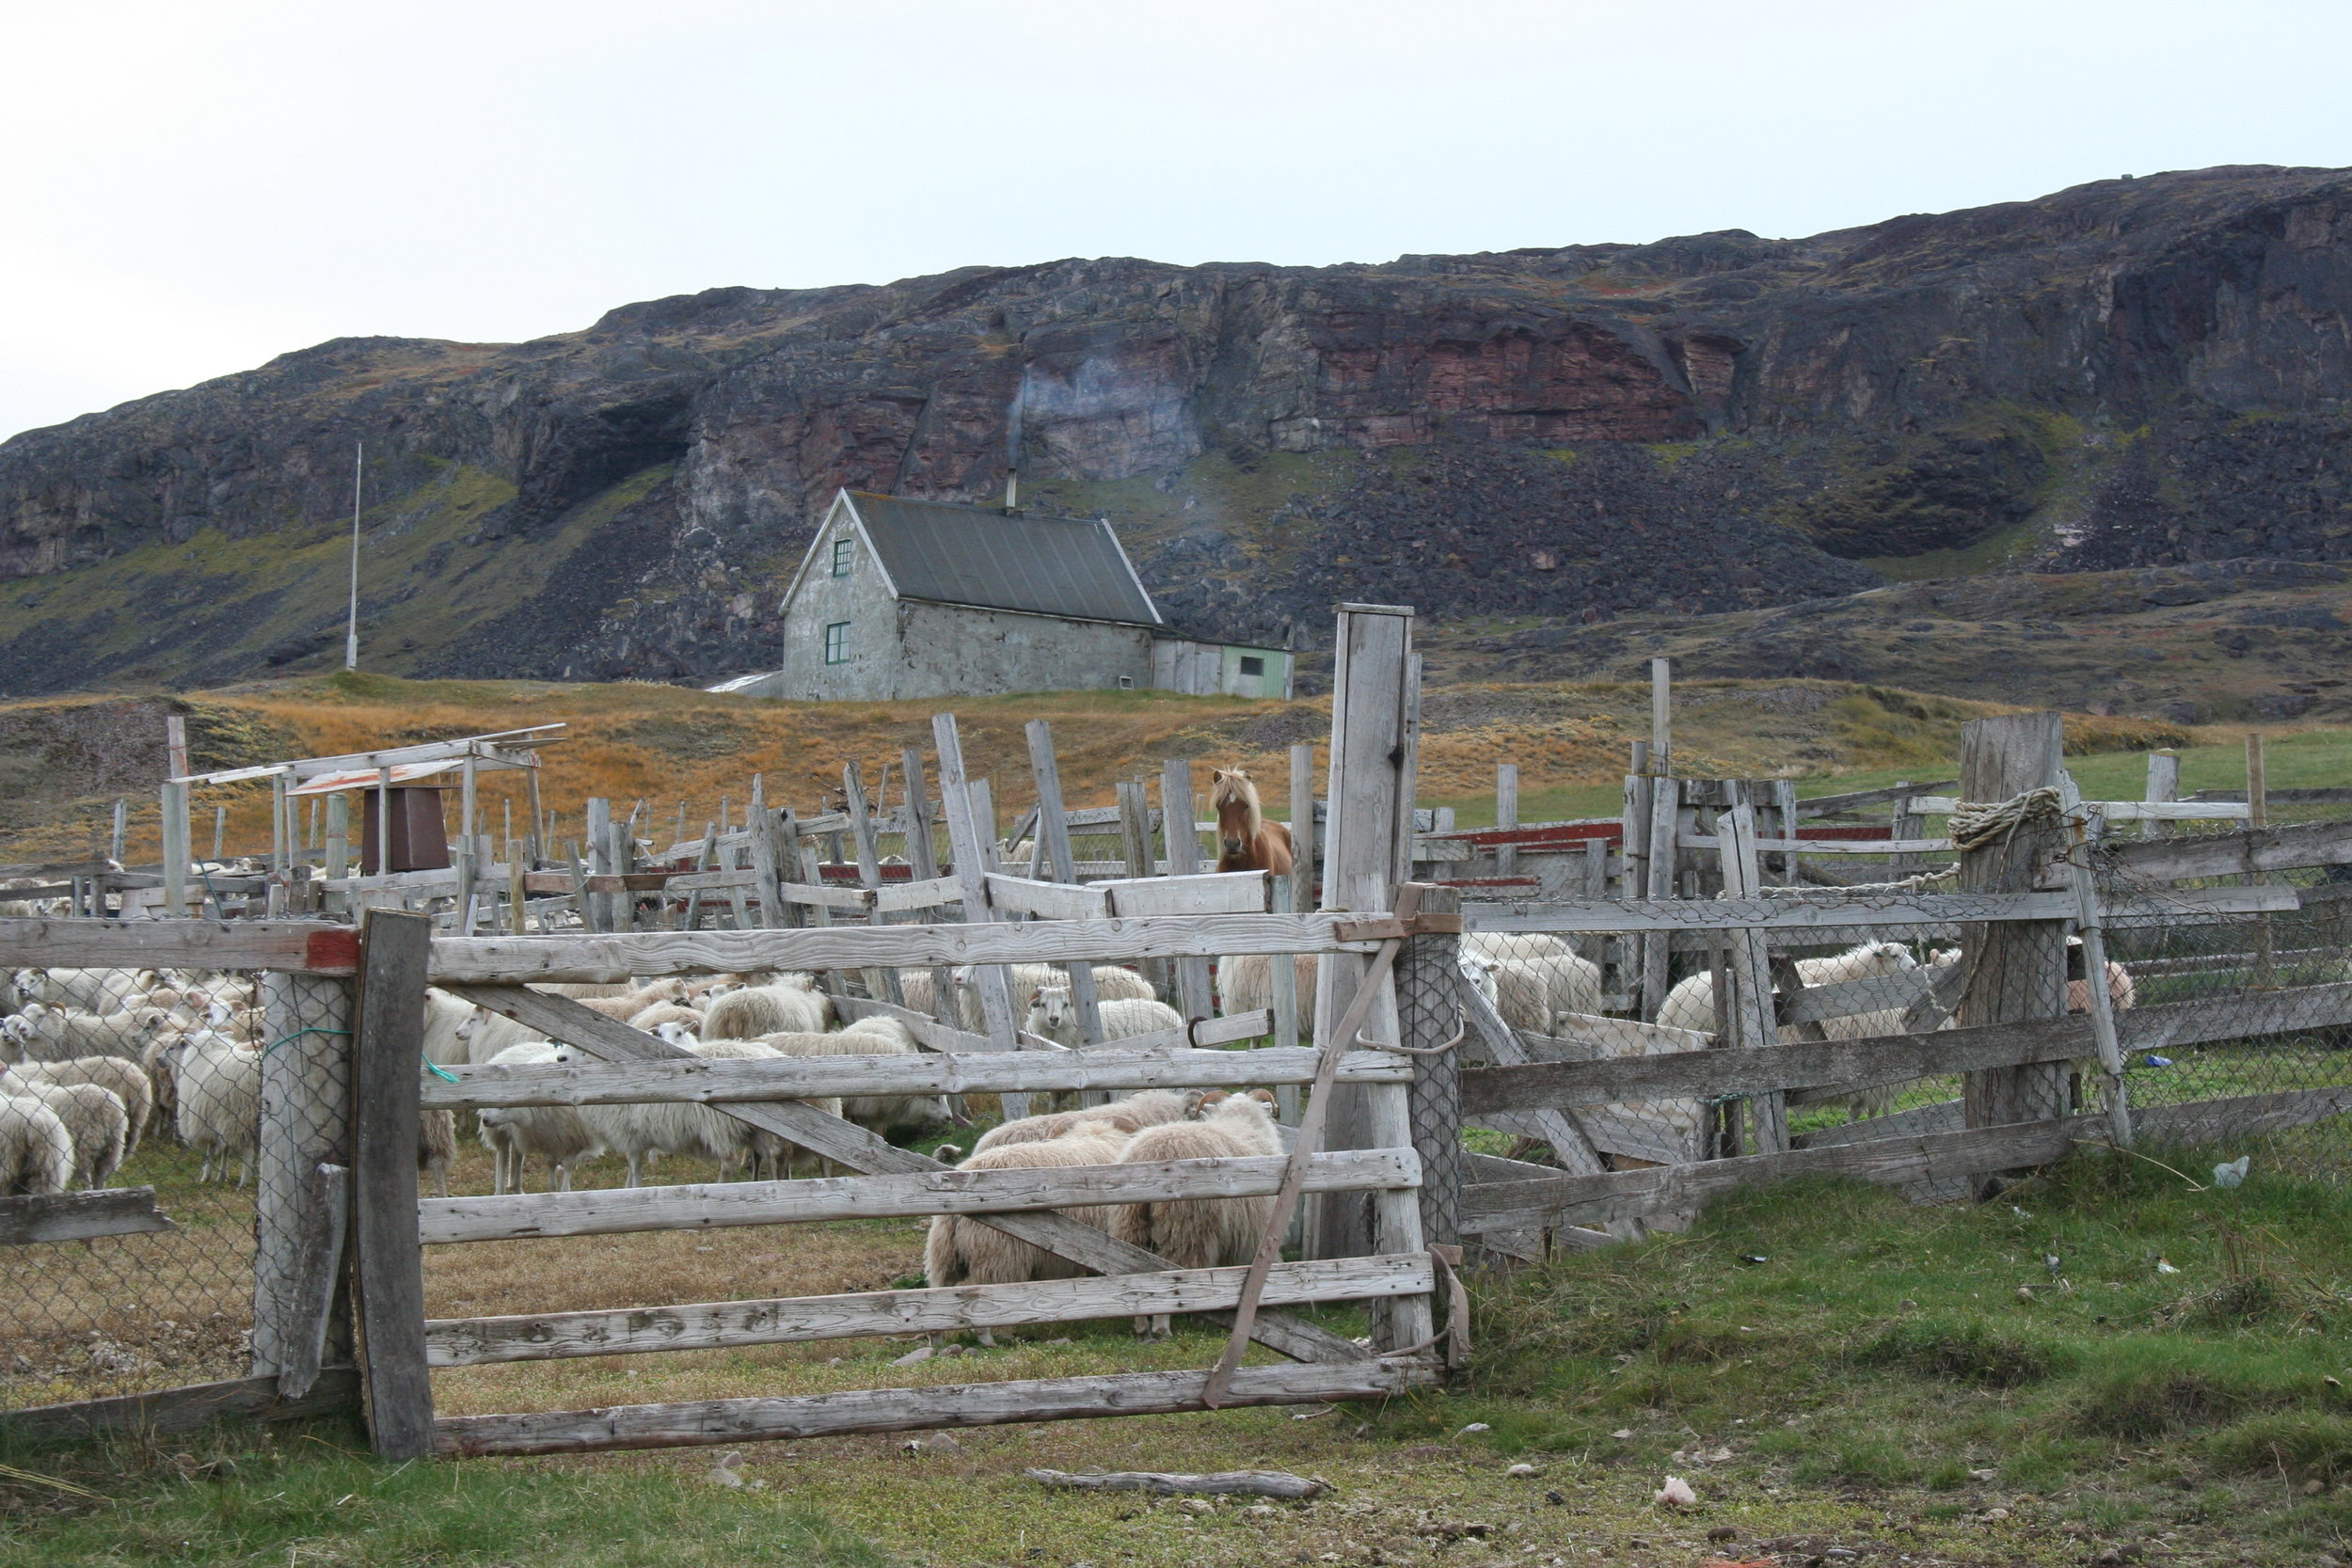 Kujataa Greenland World Heritage Site, Greenland (Denmark) - Ongoing sheep farming is essential to maintain the traditional Norse and Greenlandic landscape and the local economy          © Christophe Rivet